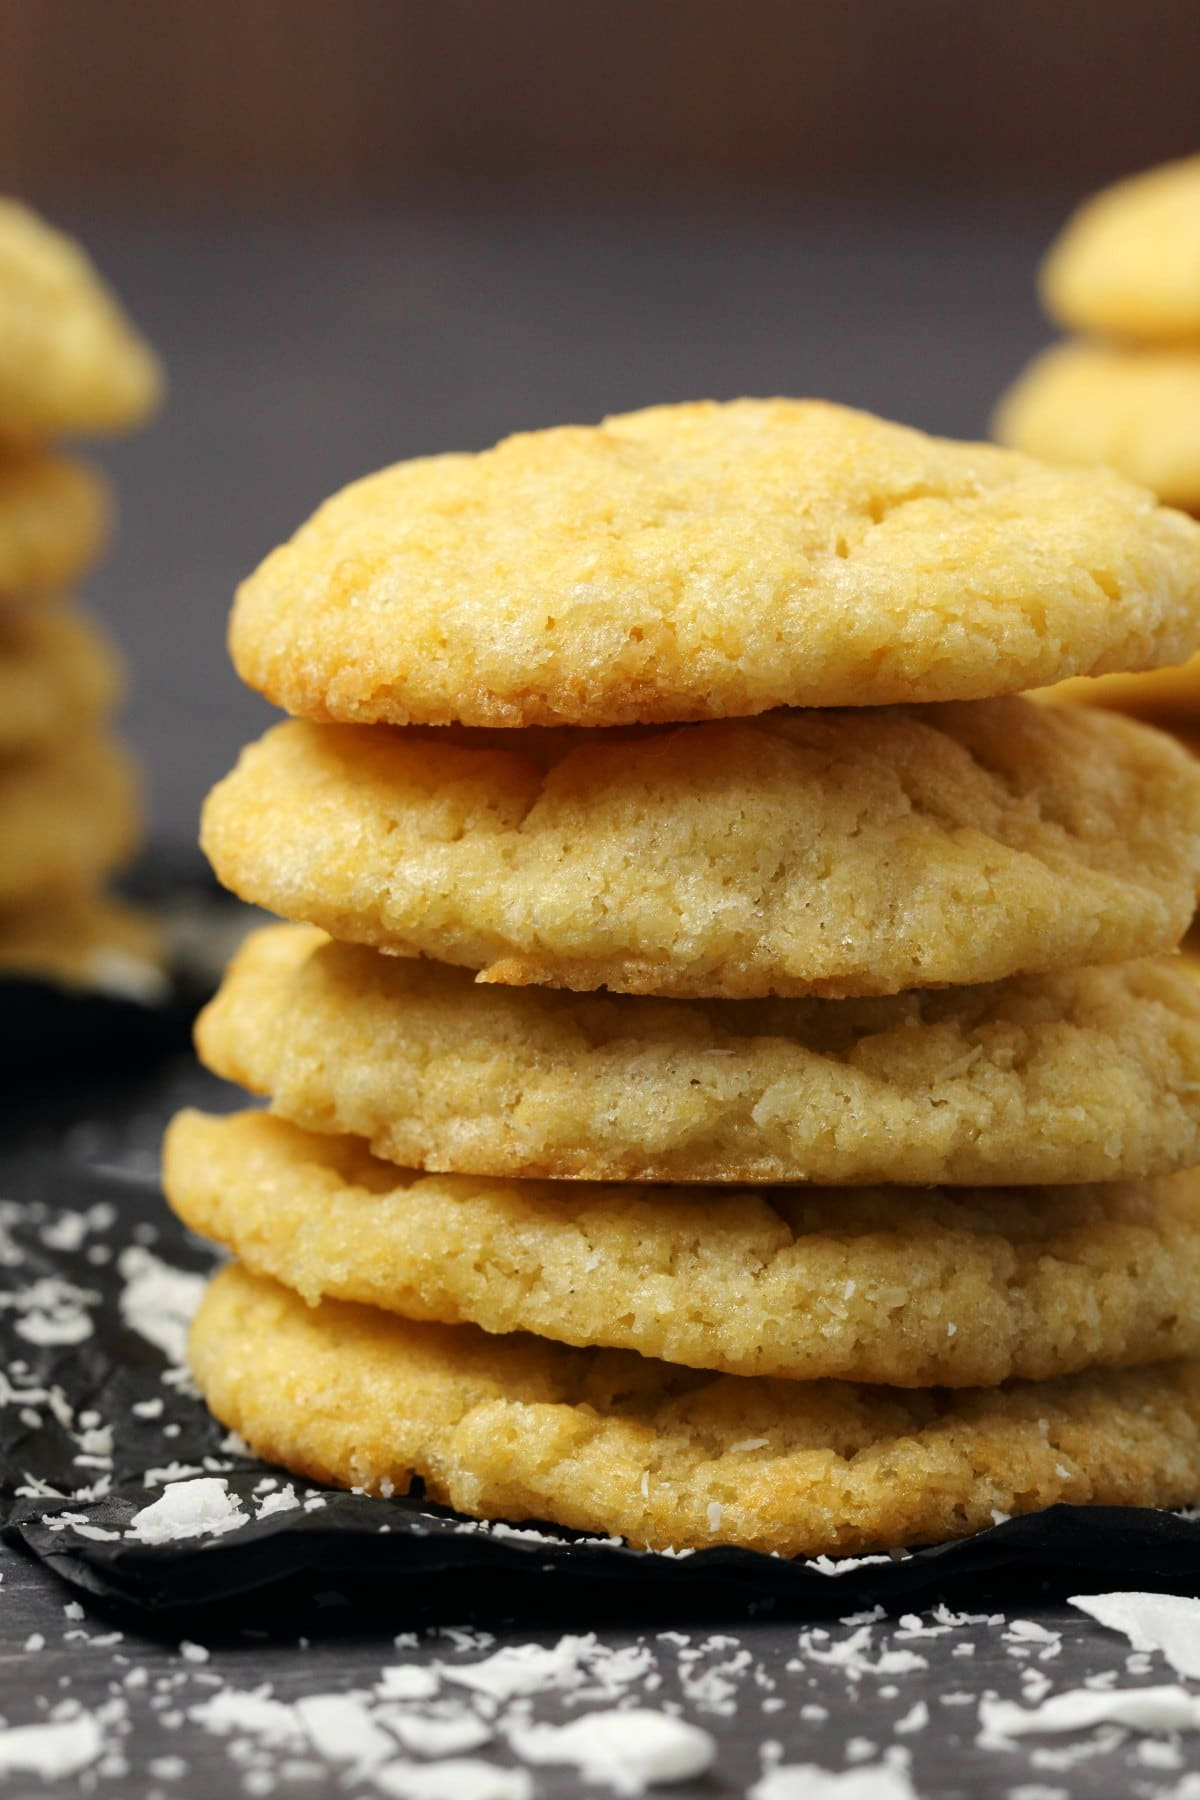 Vegan coconut cookies in a stack on black tissue paper.